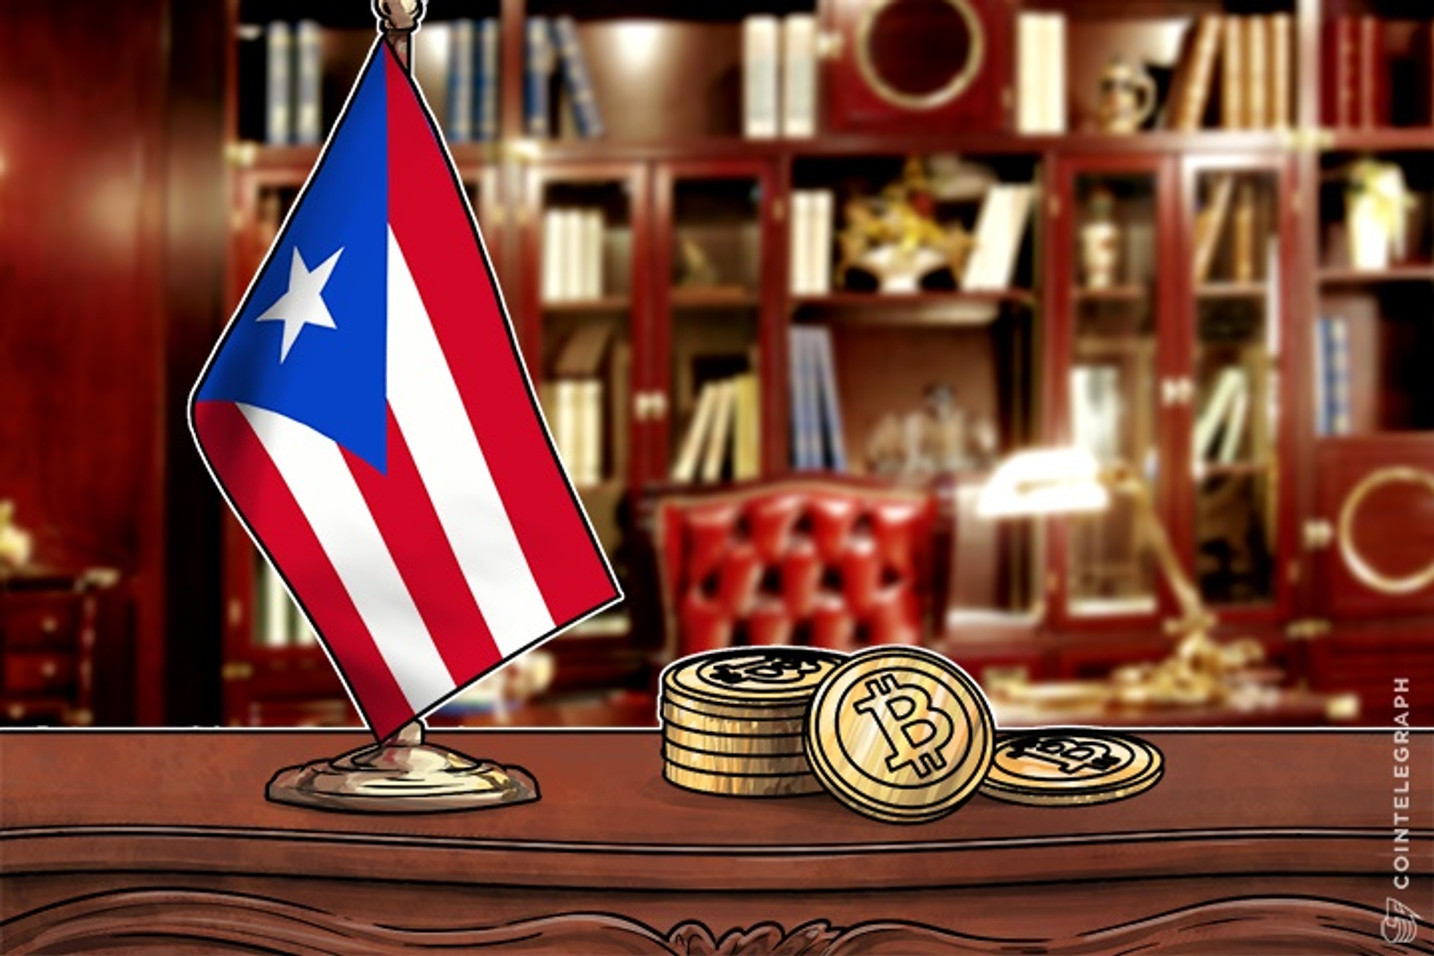 Puerto Rico Defaults on Debt: Invest in Bitcoin Instead